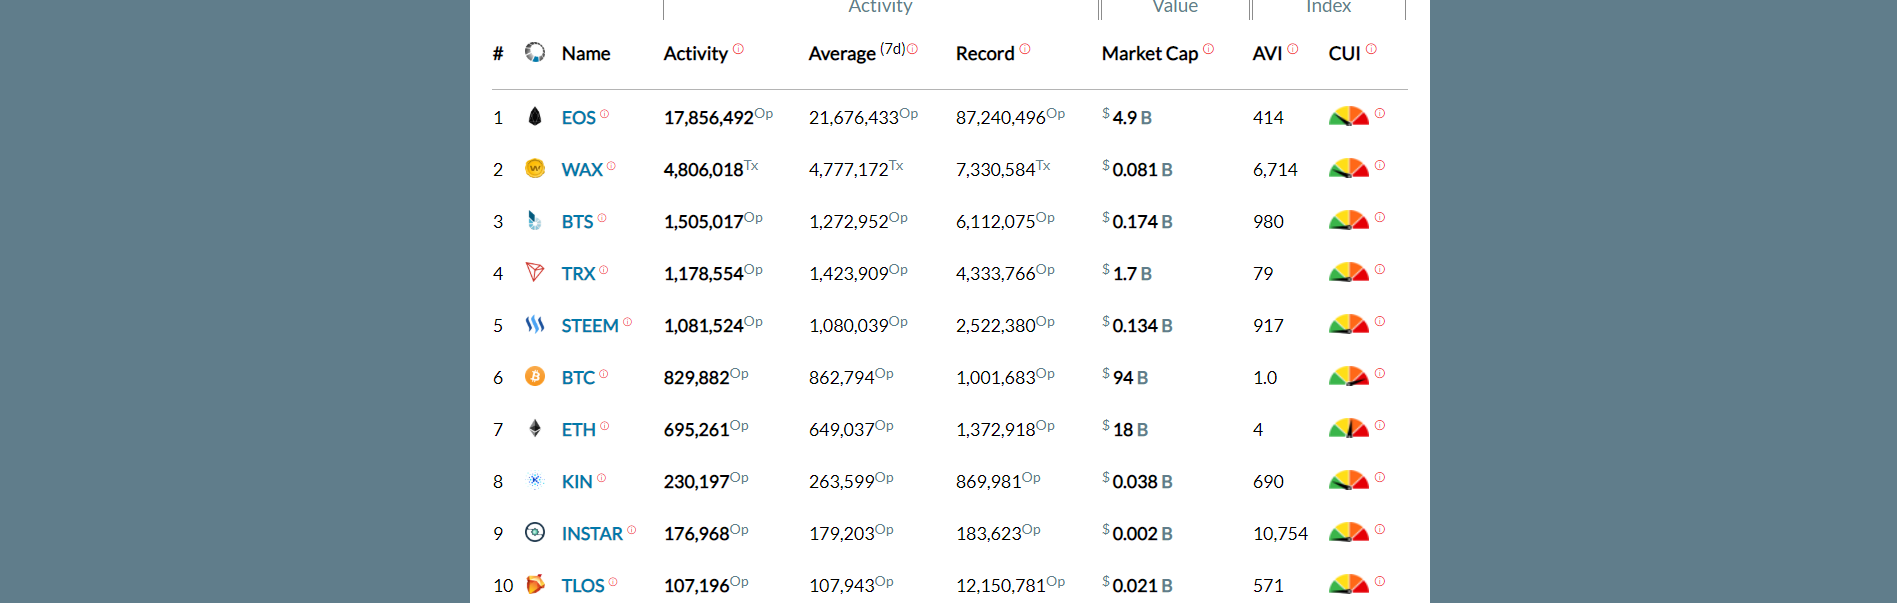 instar token has recently been listed in top 10 blockchains with the most activity